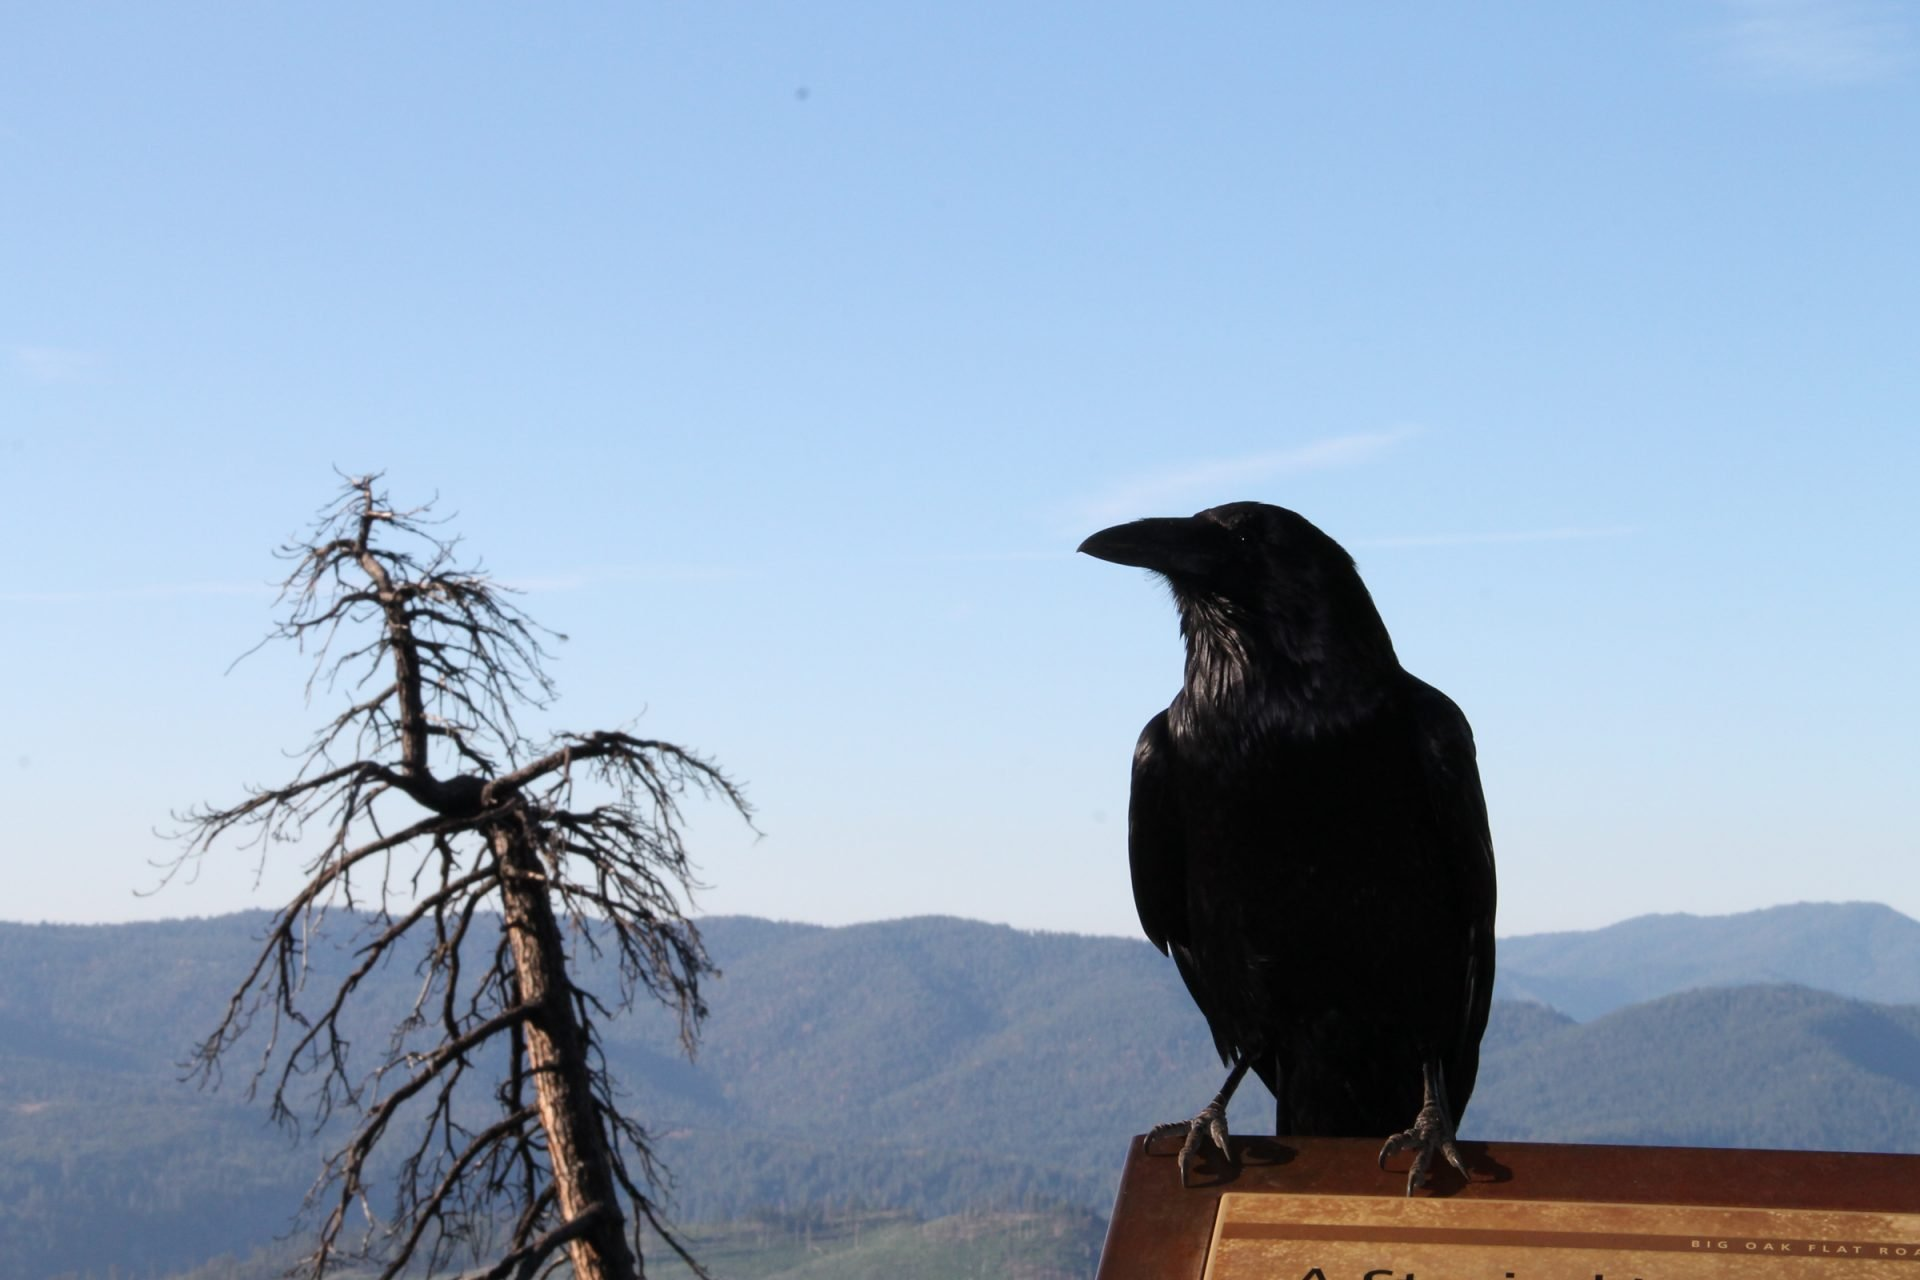 Black Crow Perched Next to Dead Tree